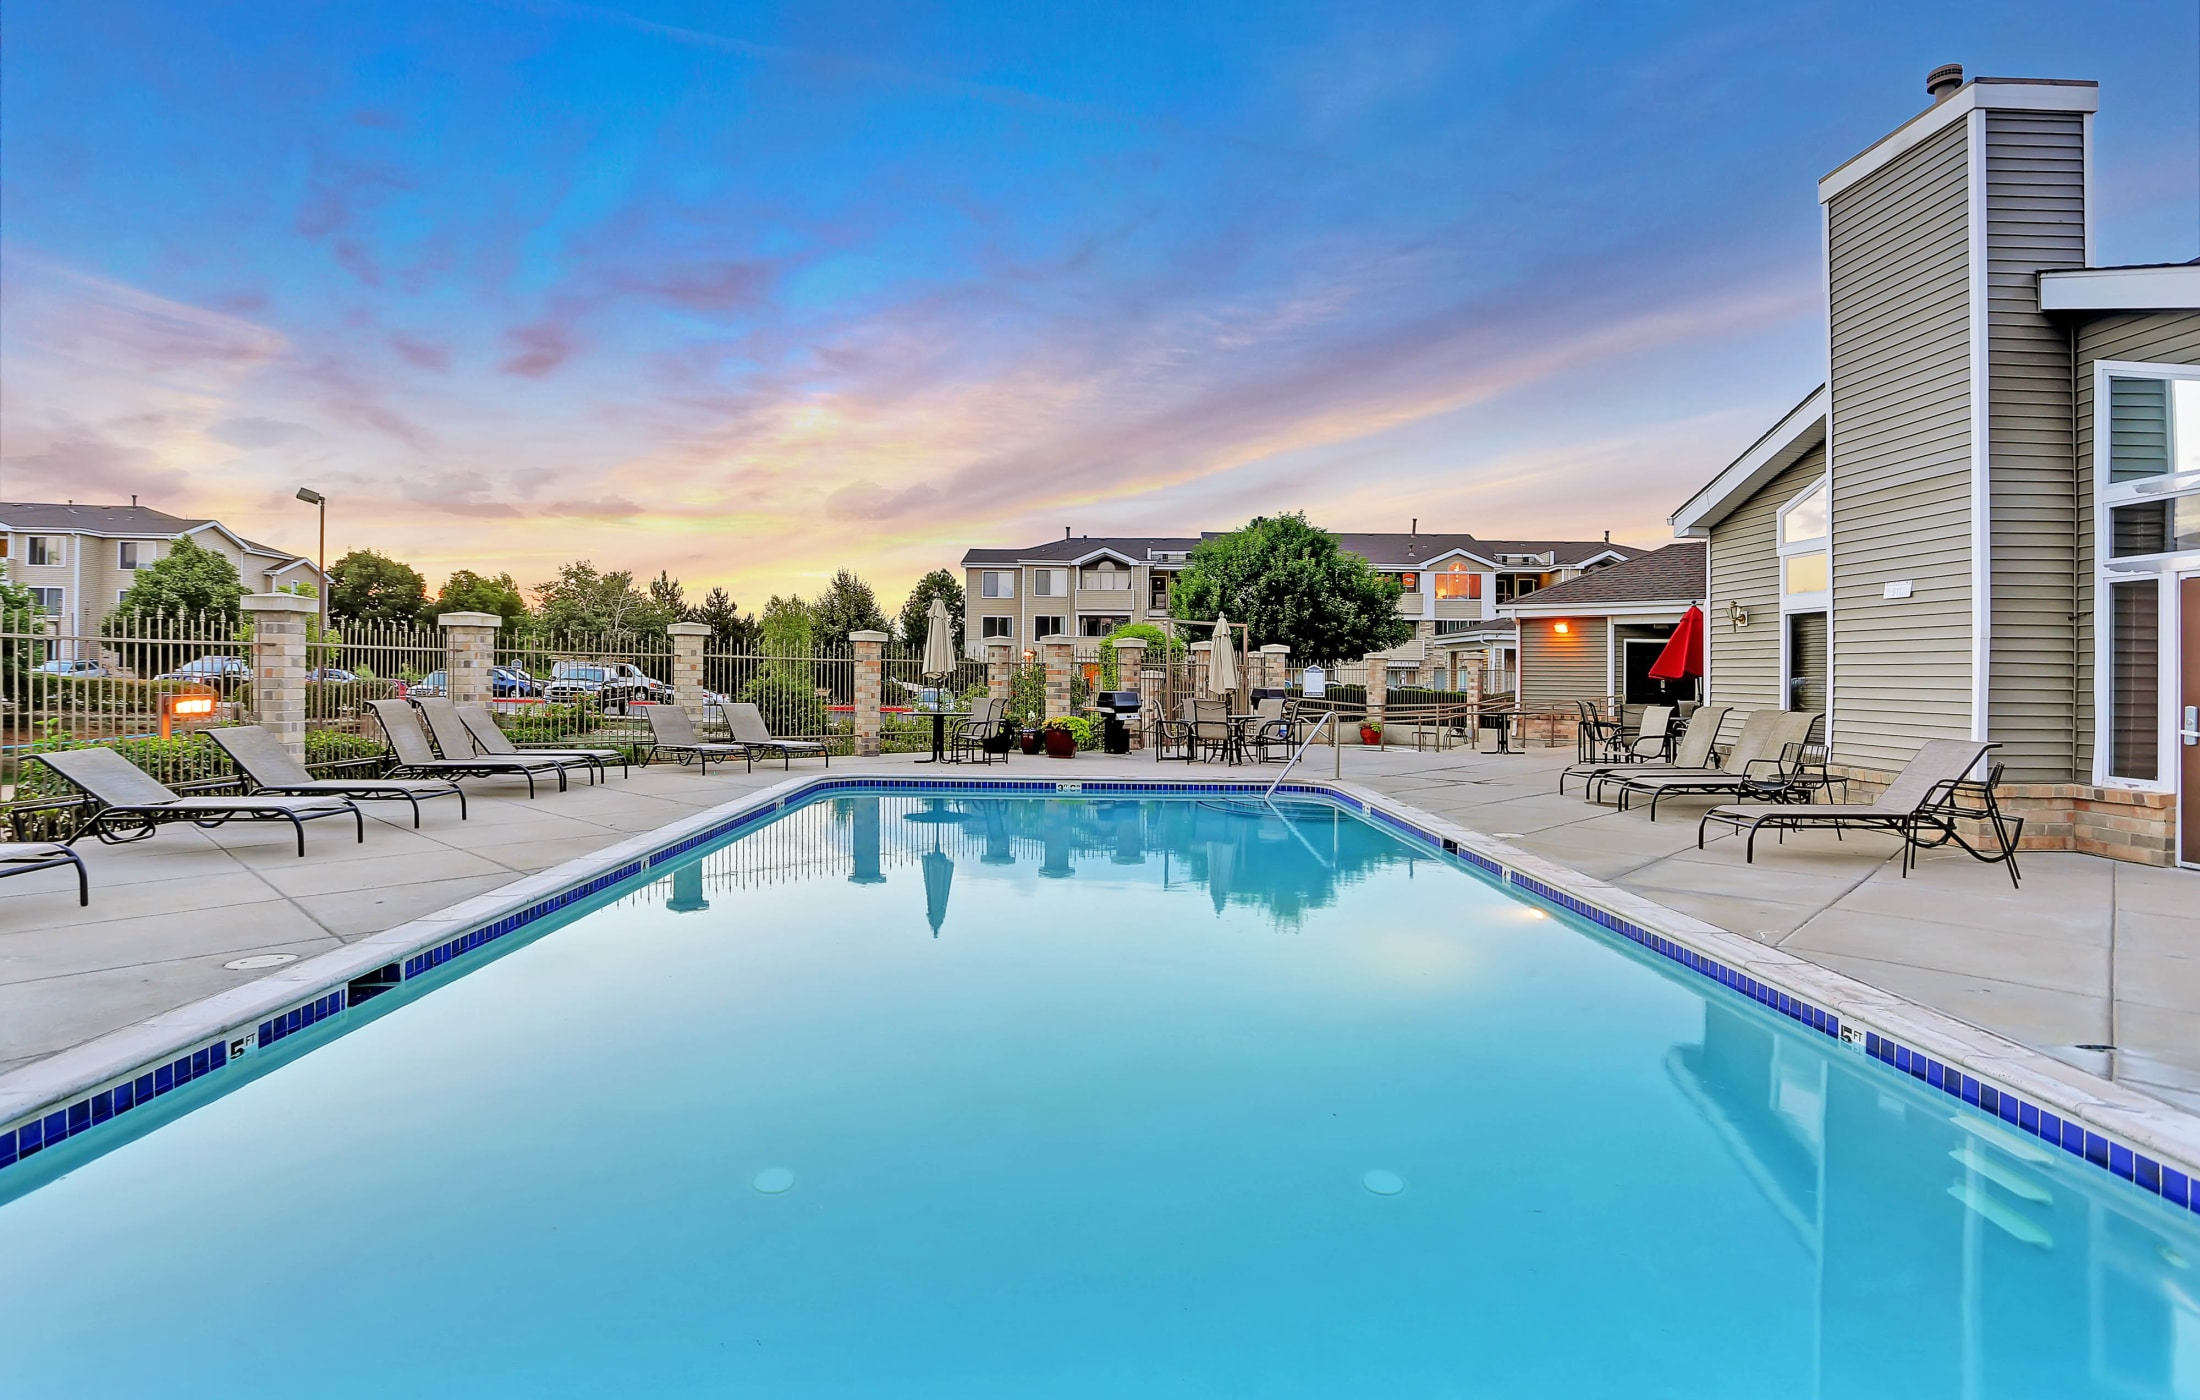 Our Apartments in Fort Collins, Colorado offer a Swimming Pool